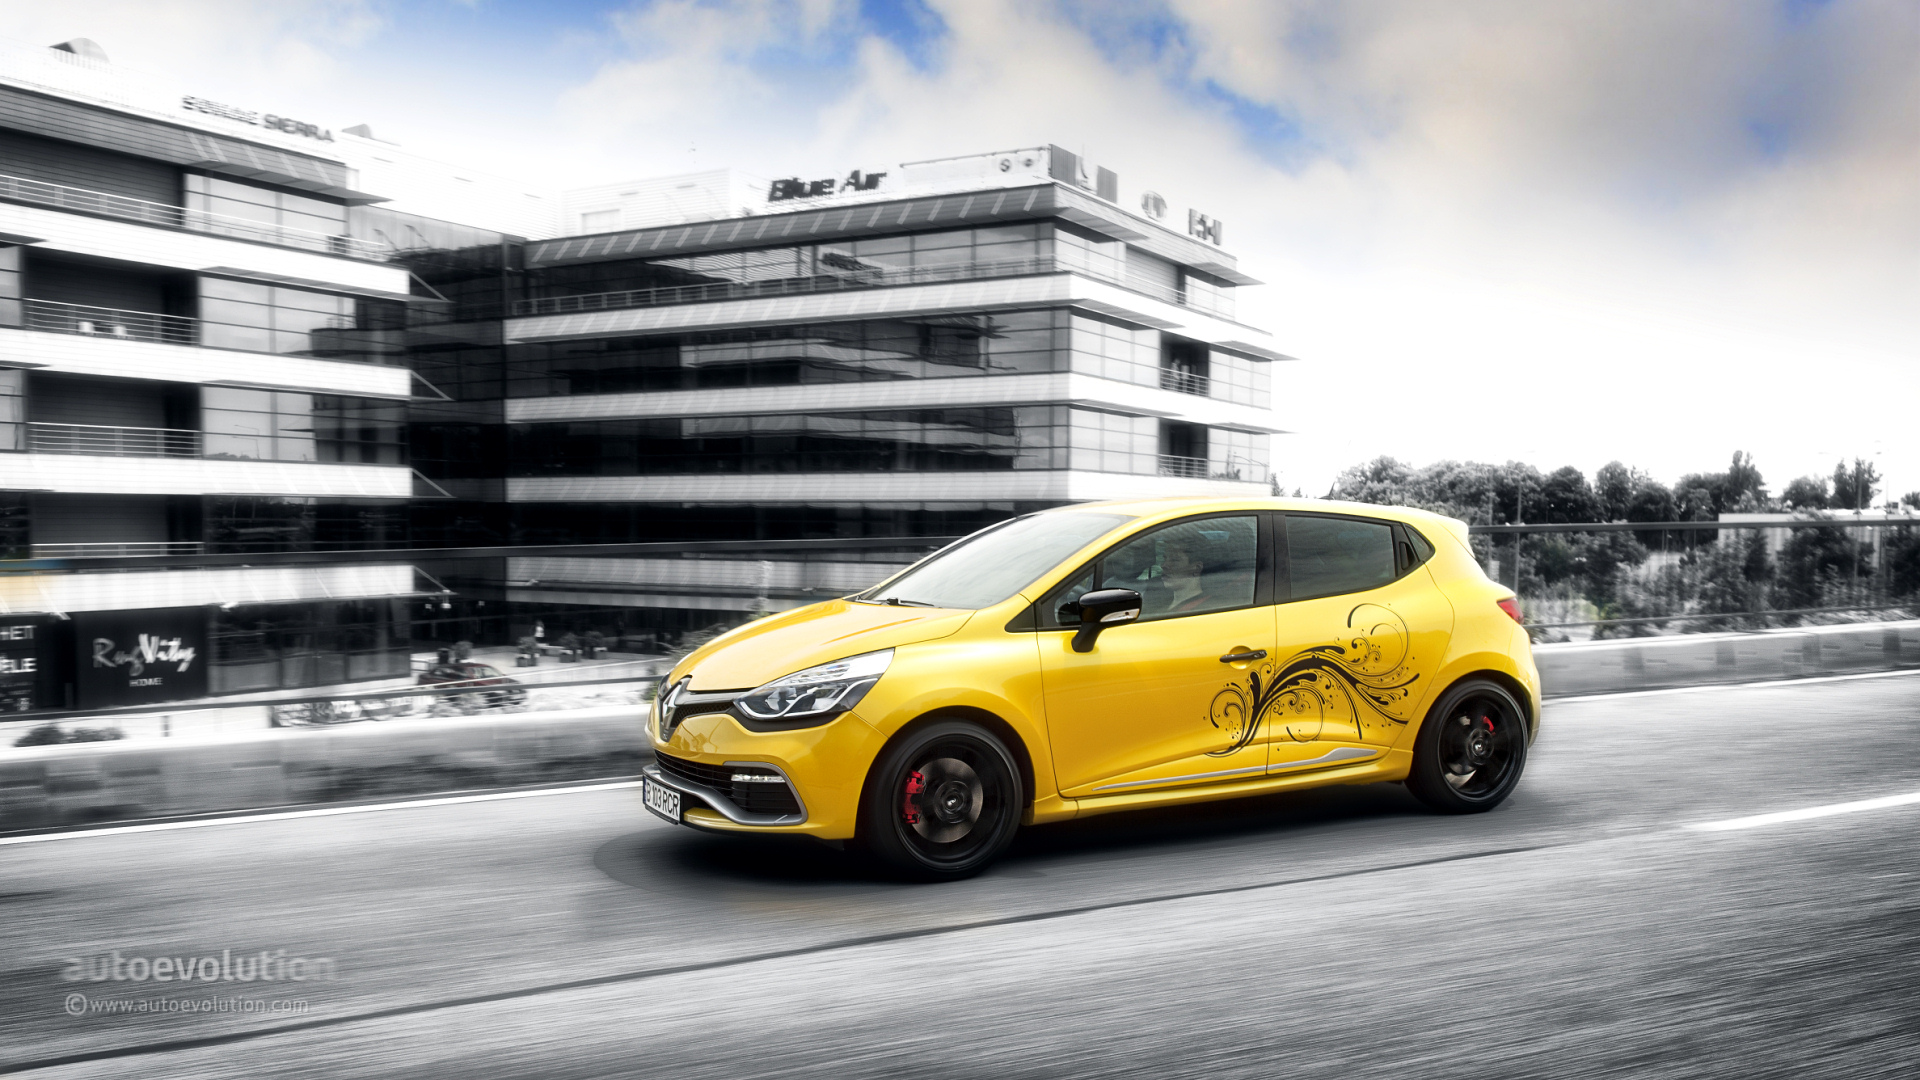 renault clio rs 200 turbo hd wallpapers autoevolution. Black Bedroom Furniture Sets. Home Design Ideas